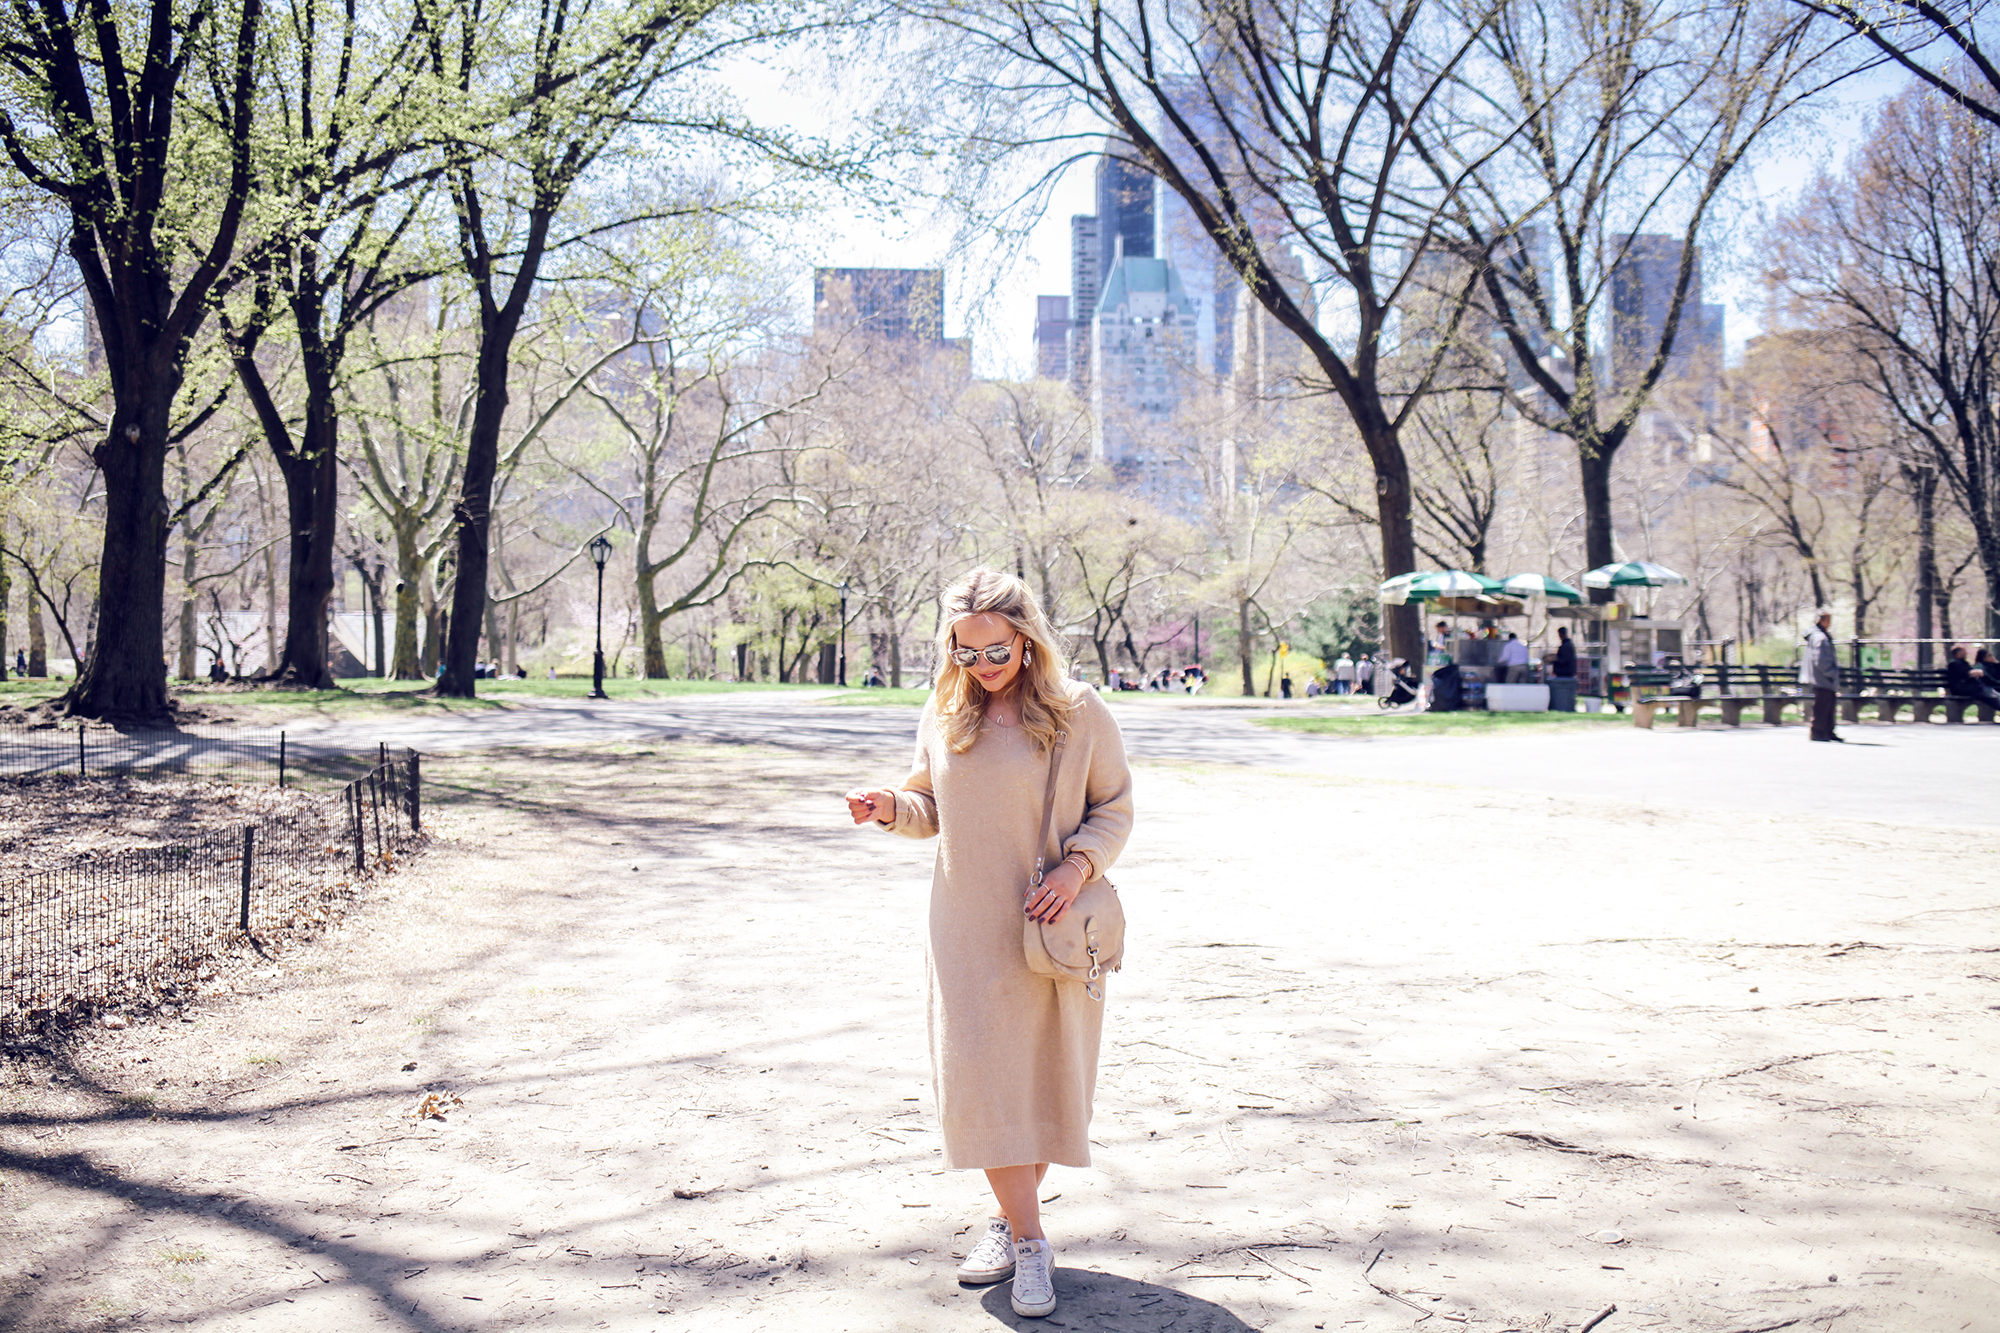 Airport style & stress | Cath In The City | Bloglovin'